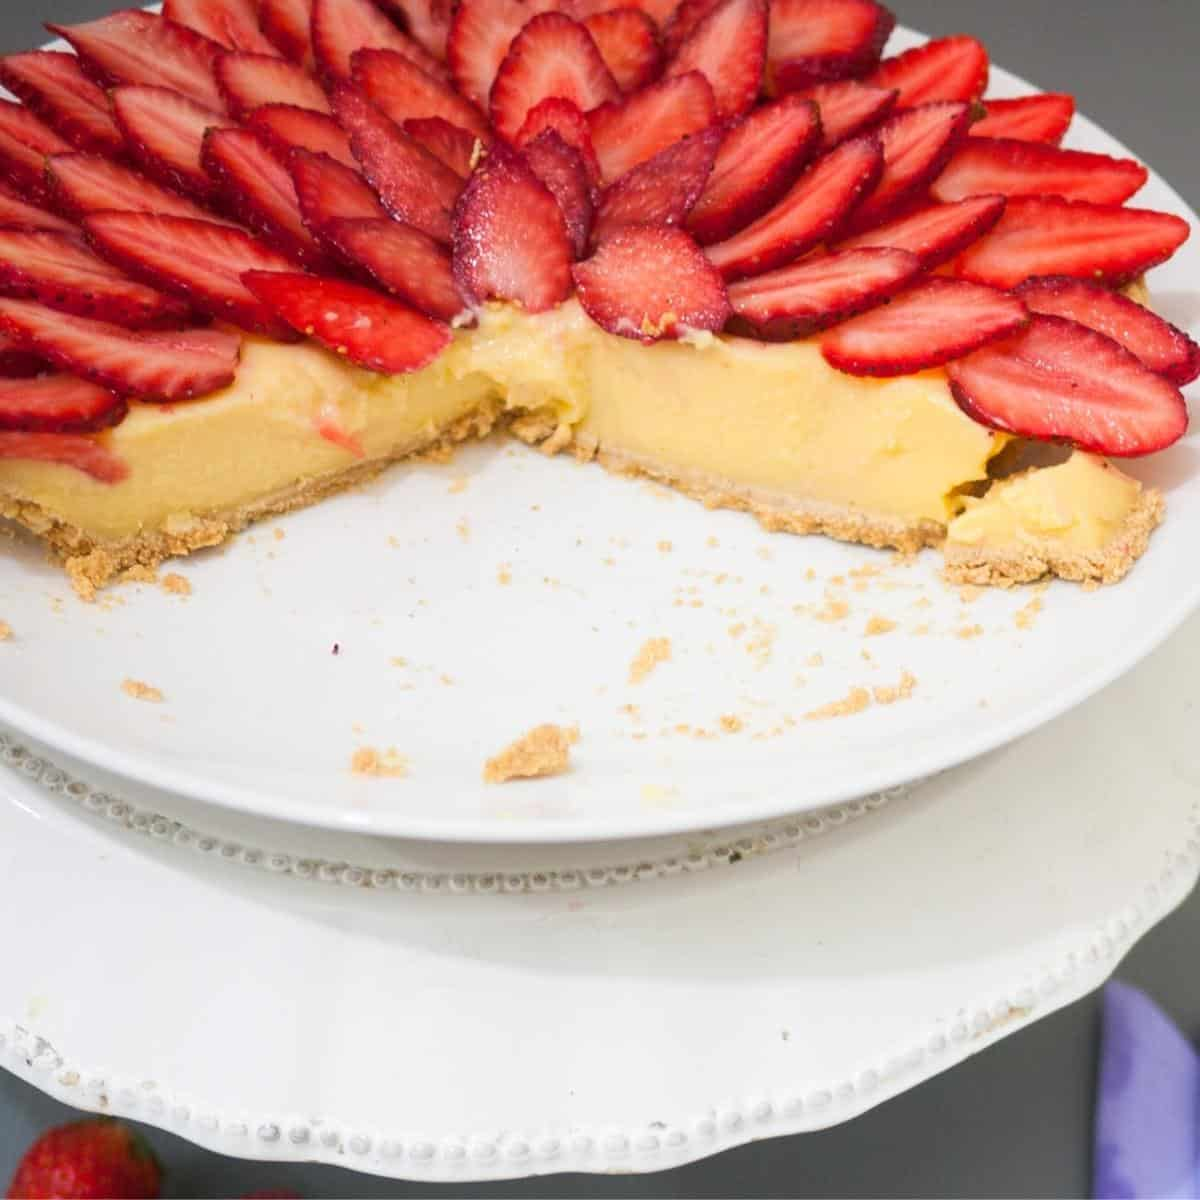 A cut fruit tart on a plate and cake stand